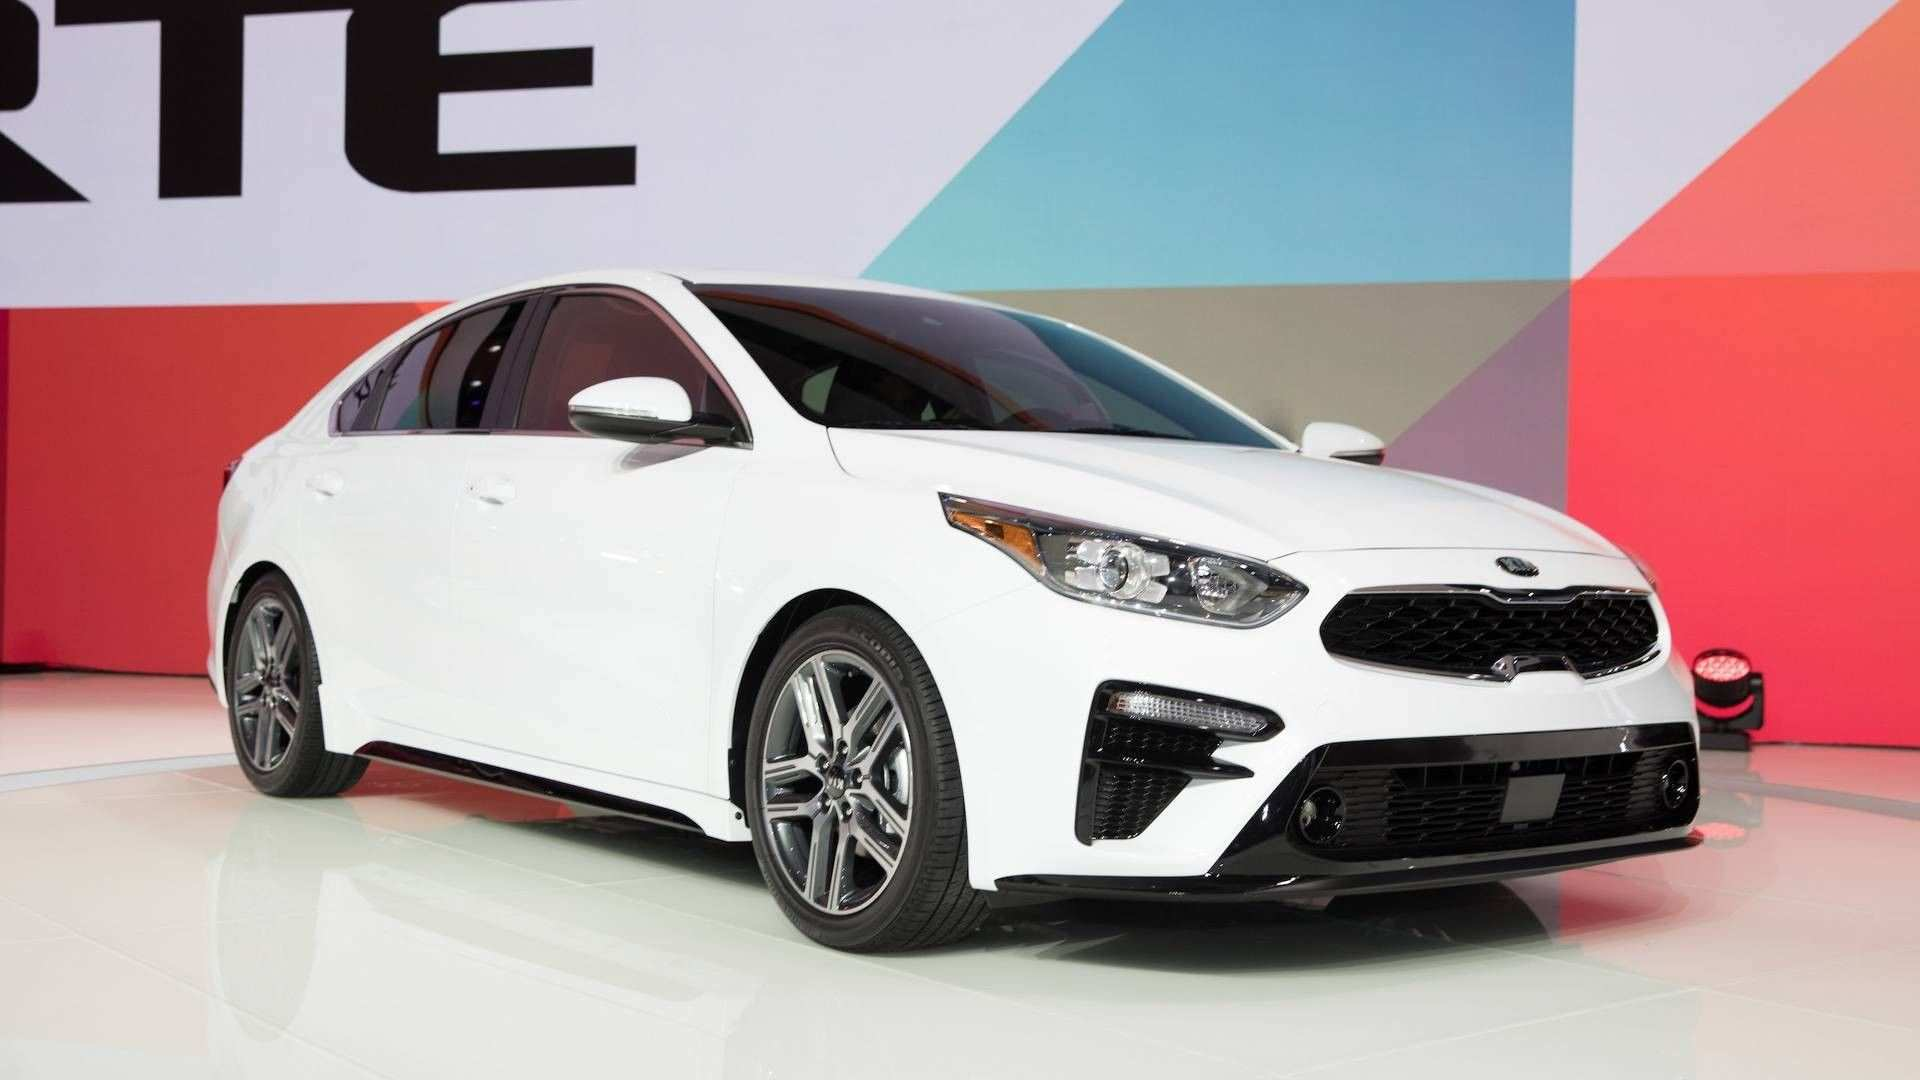 98 Great The Kia Forte 2019 Specs And Review Configurations for The Kia Forte 2019 Specs And Review